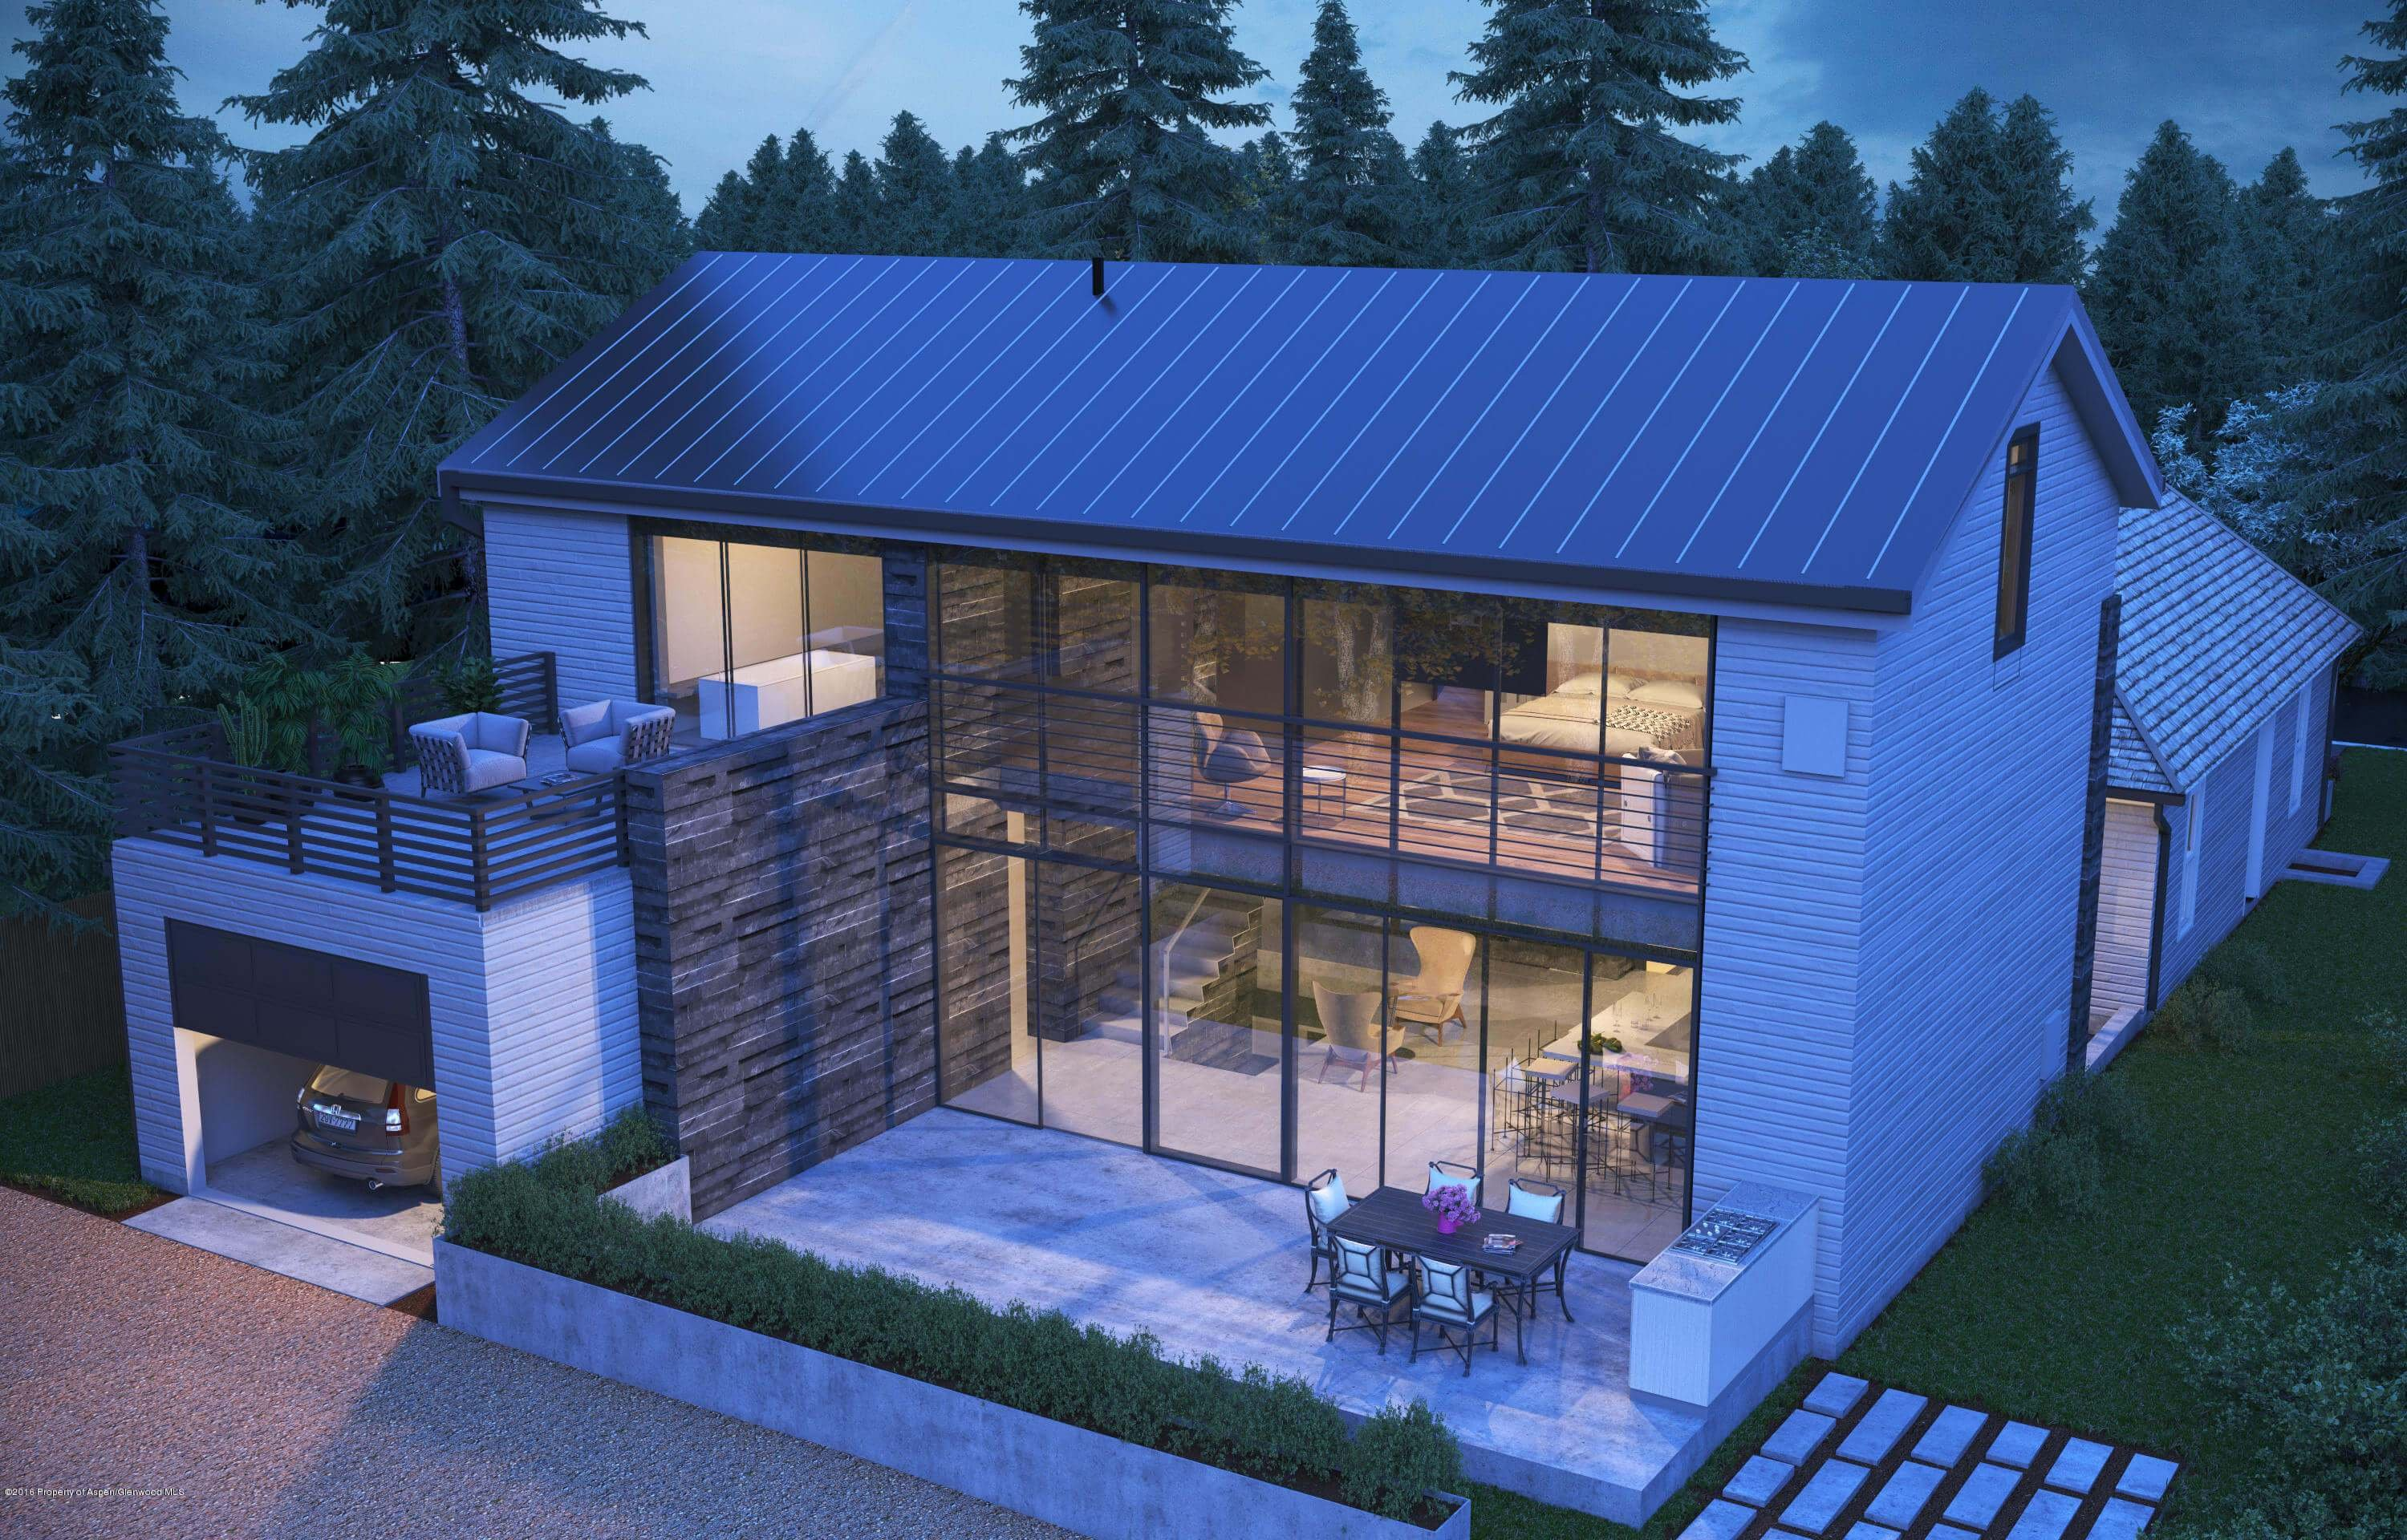 West End Aspen Remodeled Historic Vic at 417 W Hallam Sells at $11.8M/$1,944 SqFt Image